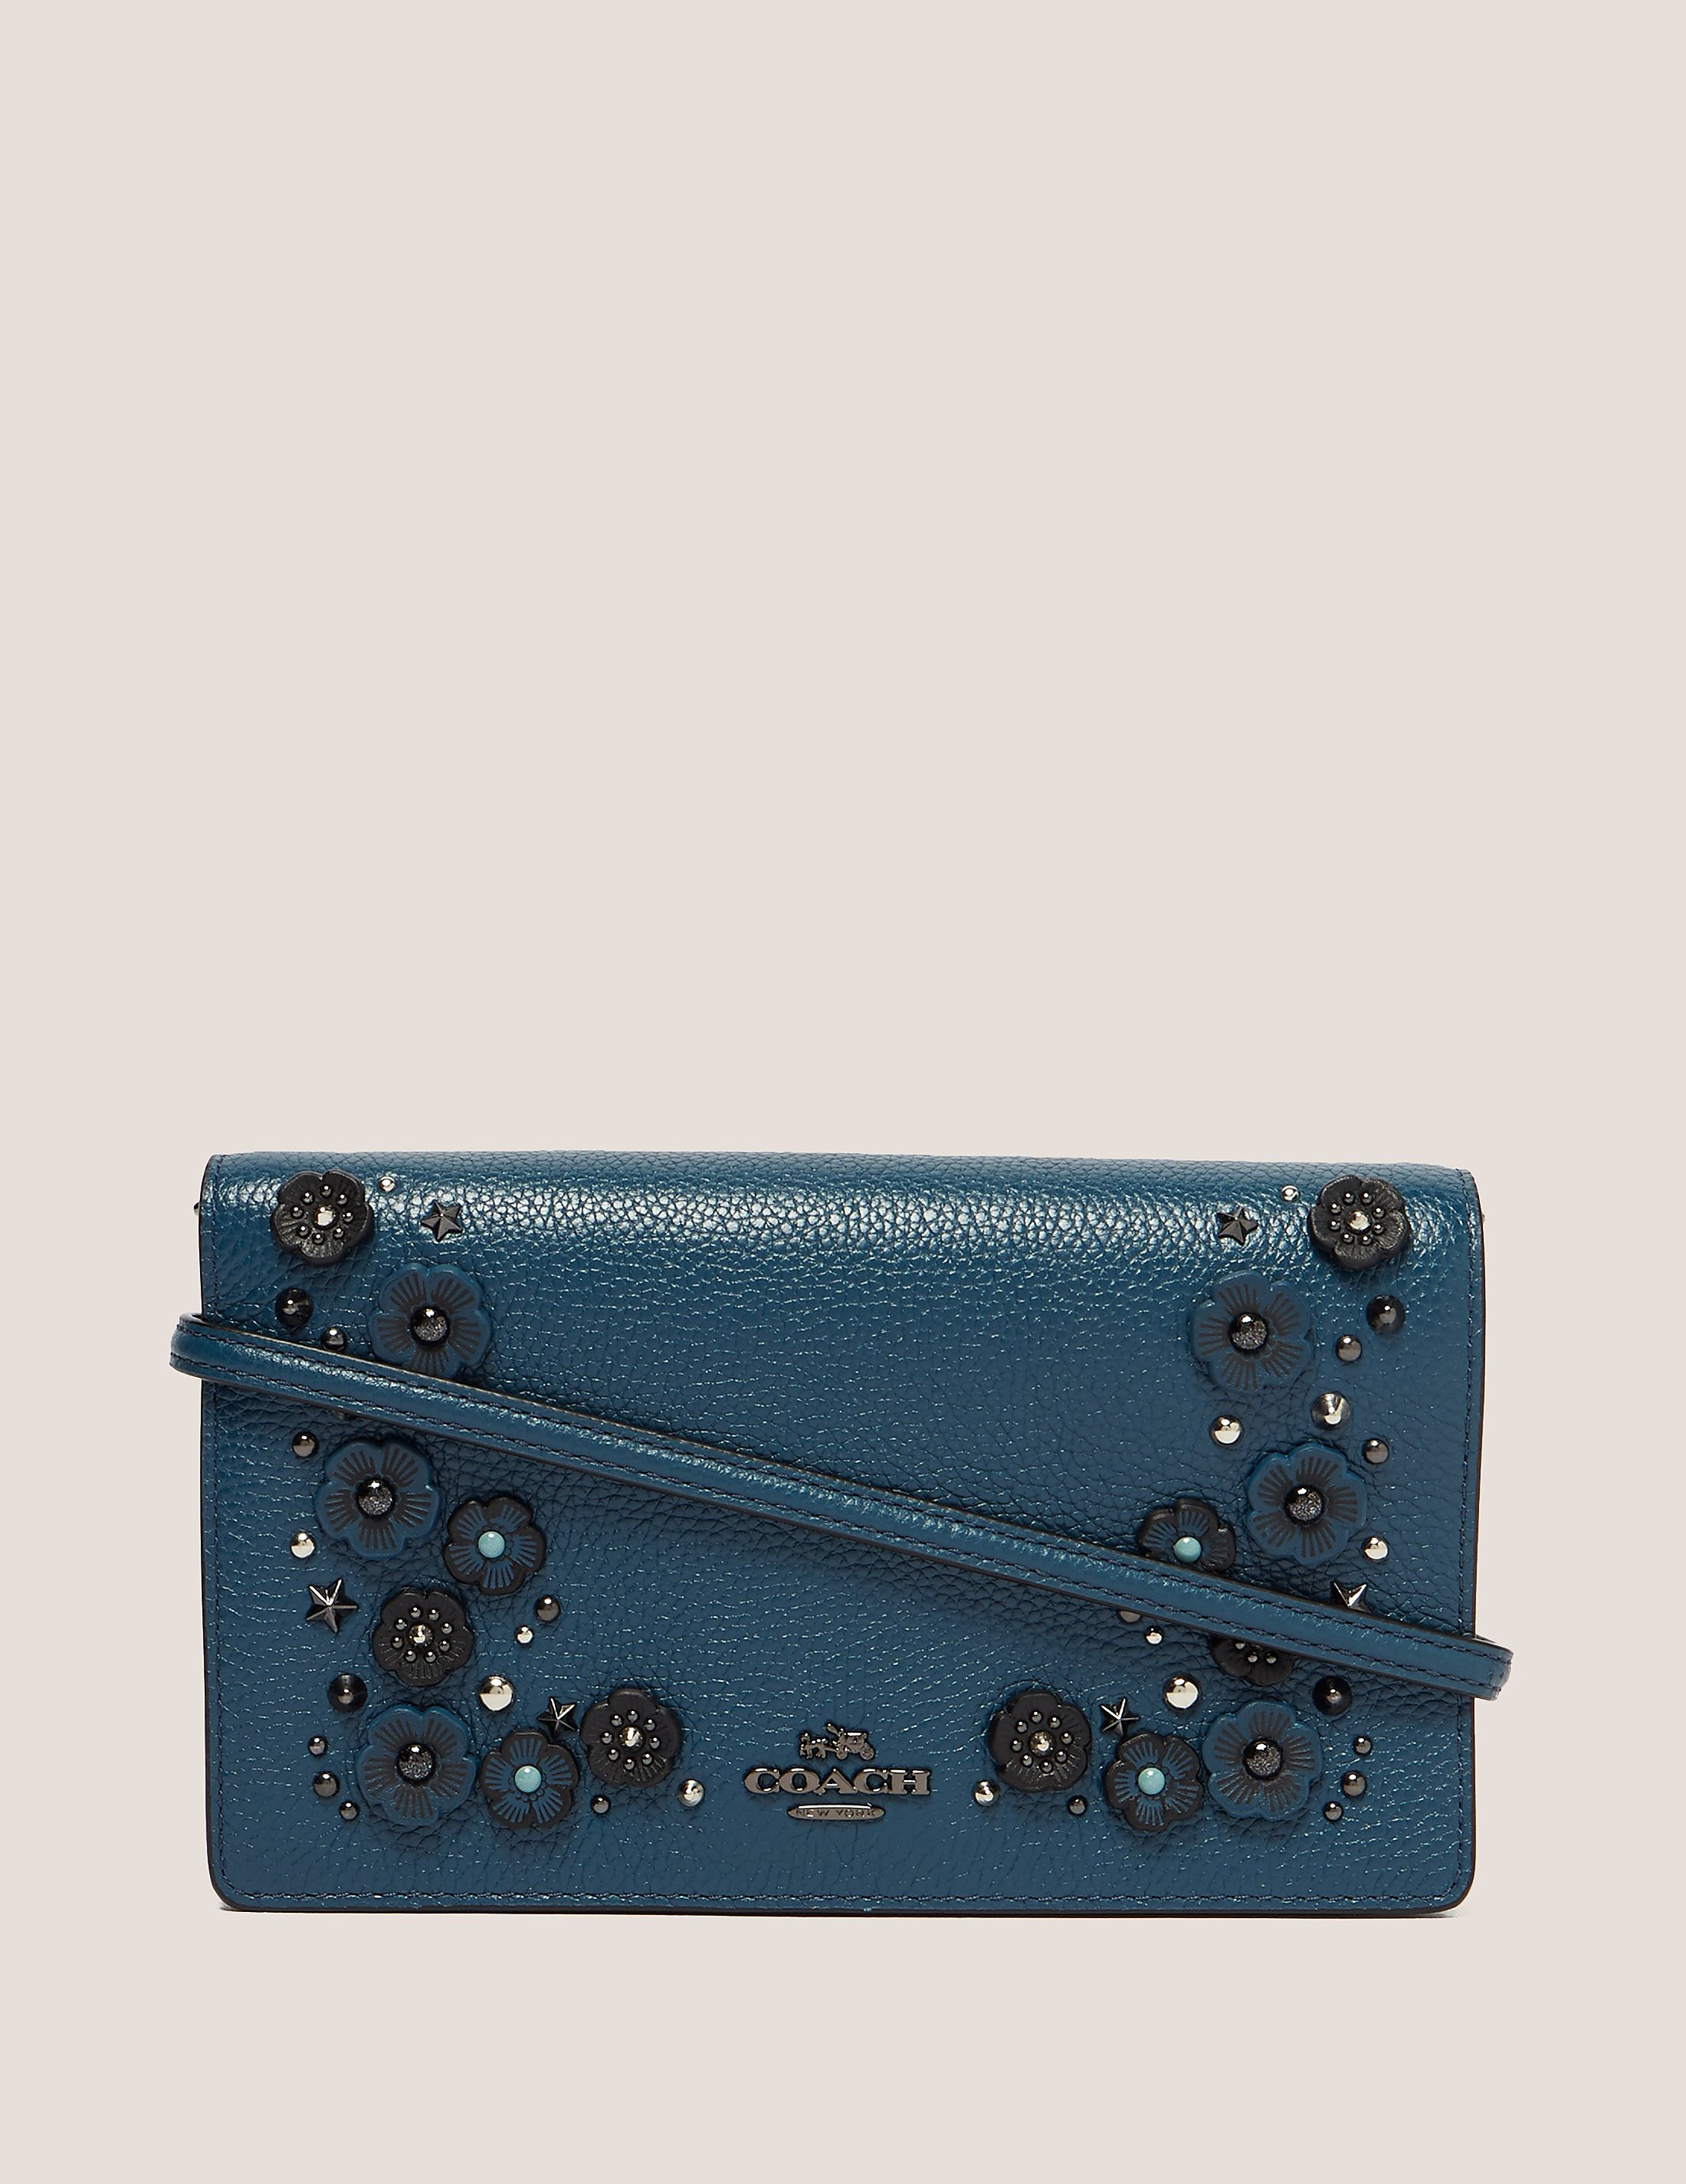 COACH Floral Crossbody Clutch